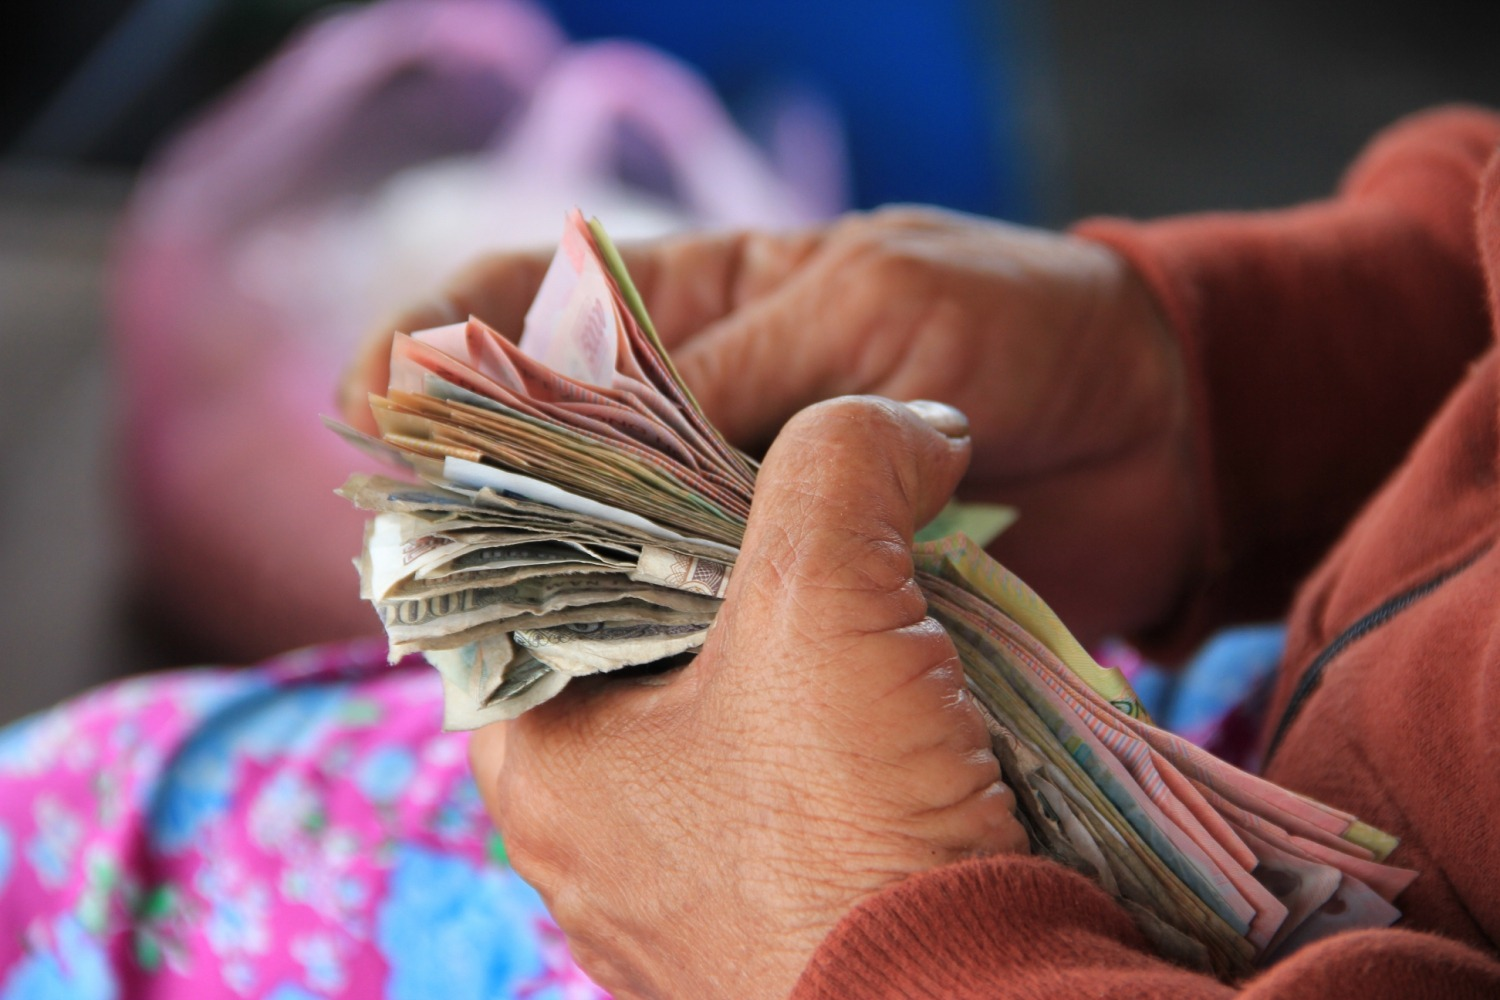 person counting money with their hands